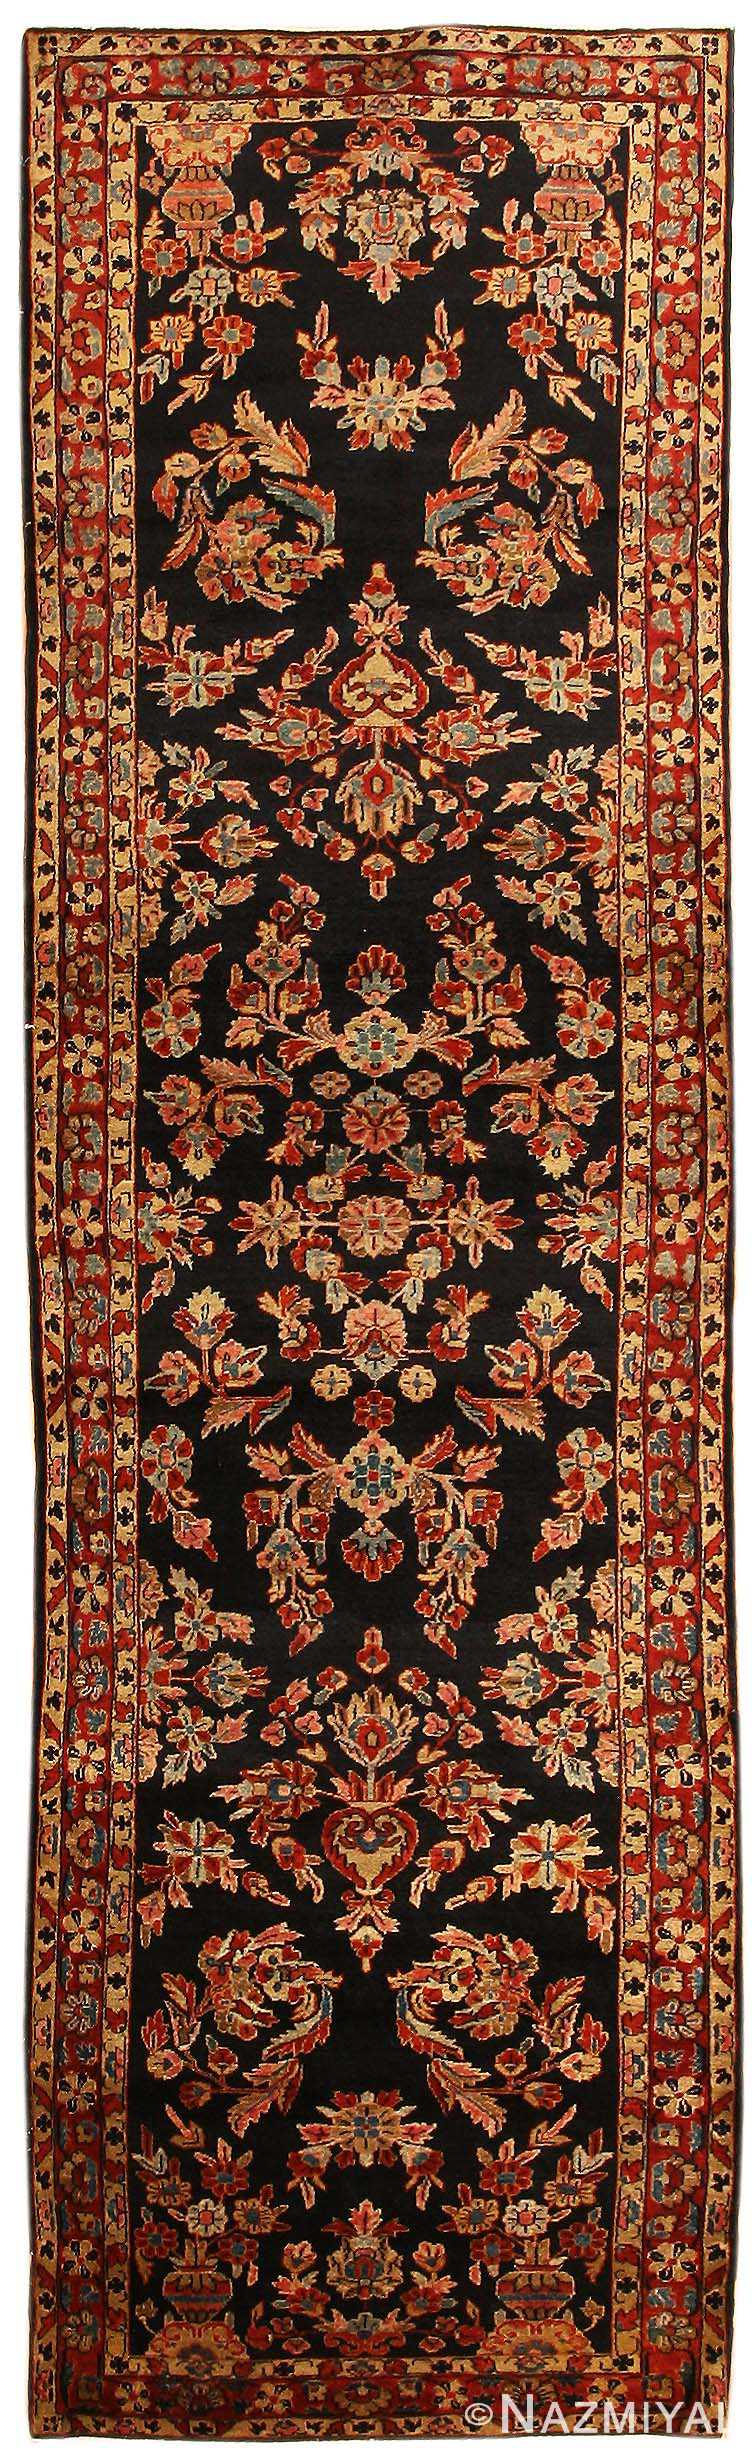 antique mehajeran persian rugs 43867 - nazmiyal collection